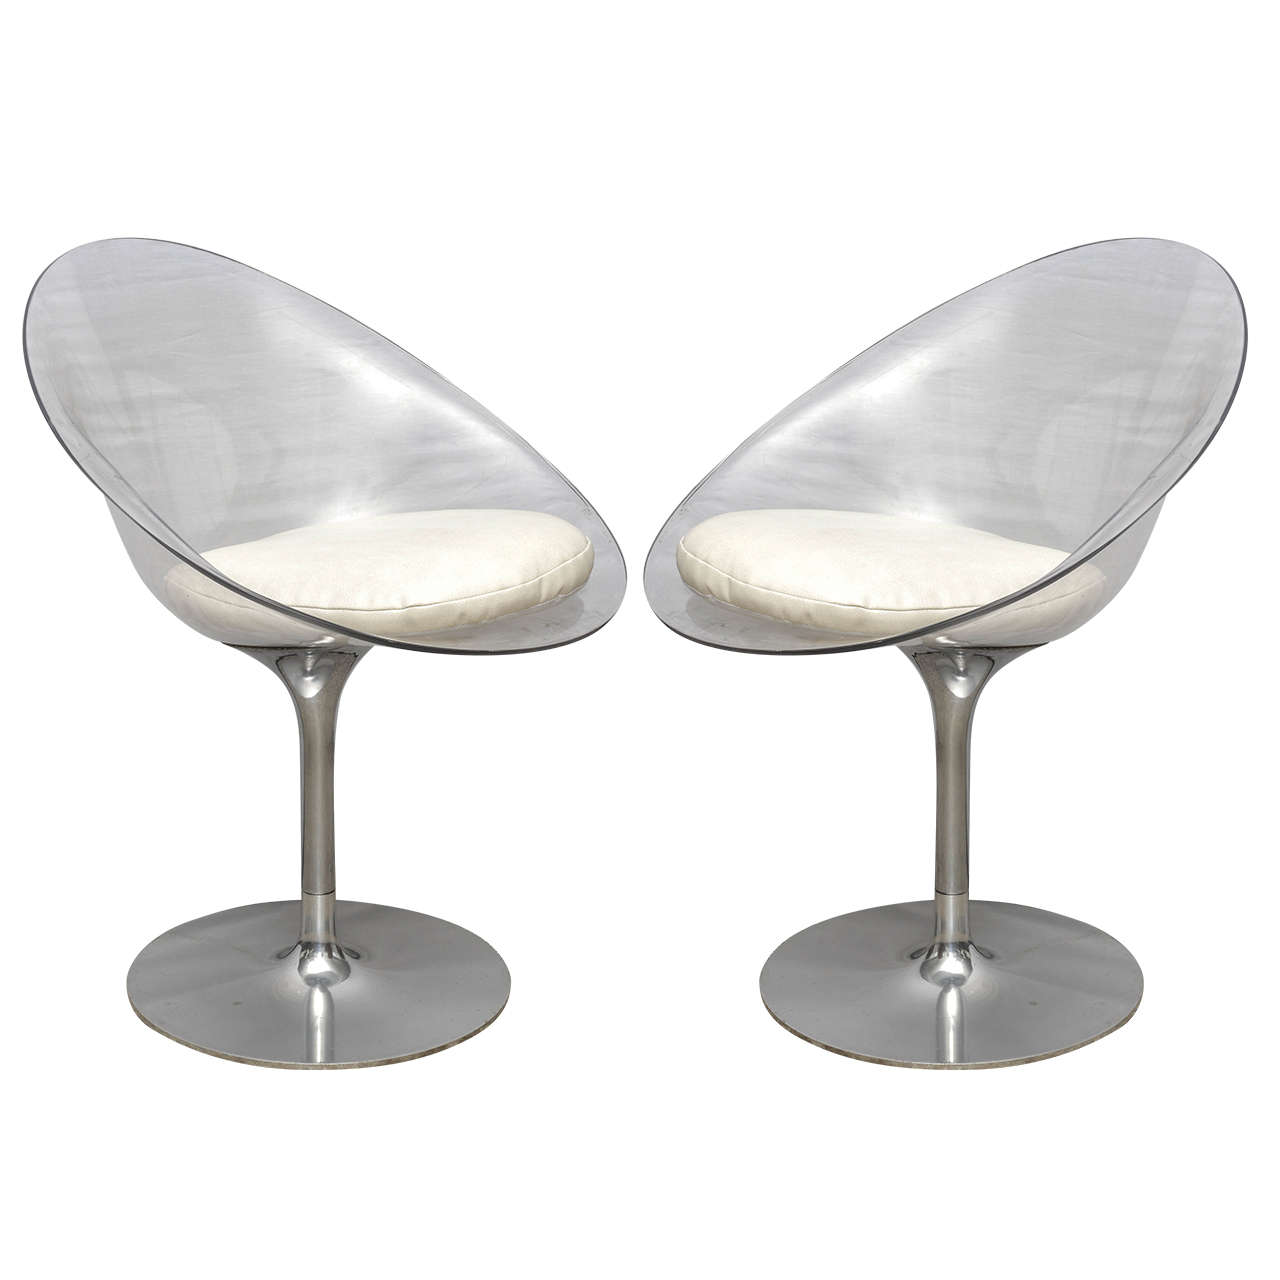 Pair of Philippe Starck of Lucite and Chrome by Kartell Eros Swivel Chairs 1